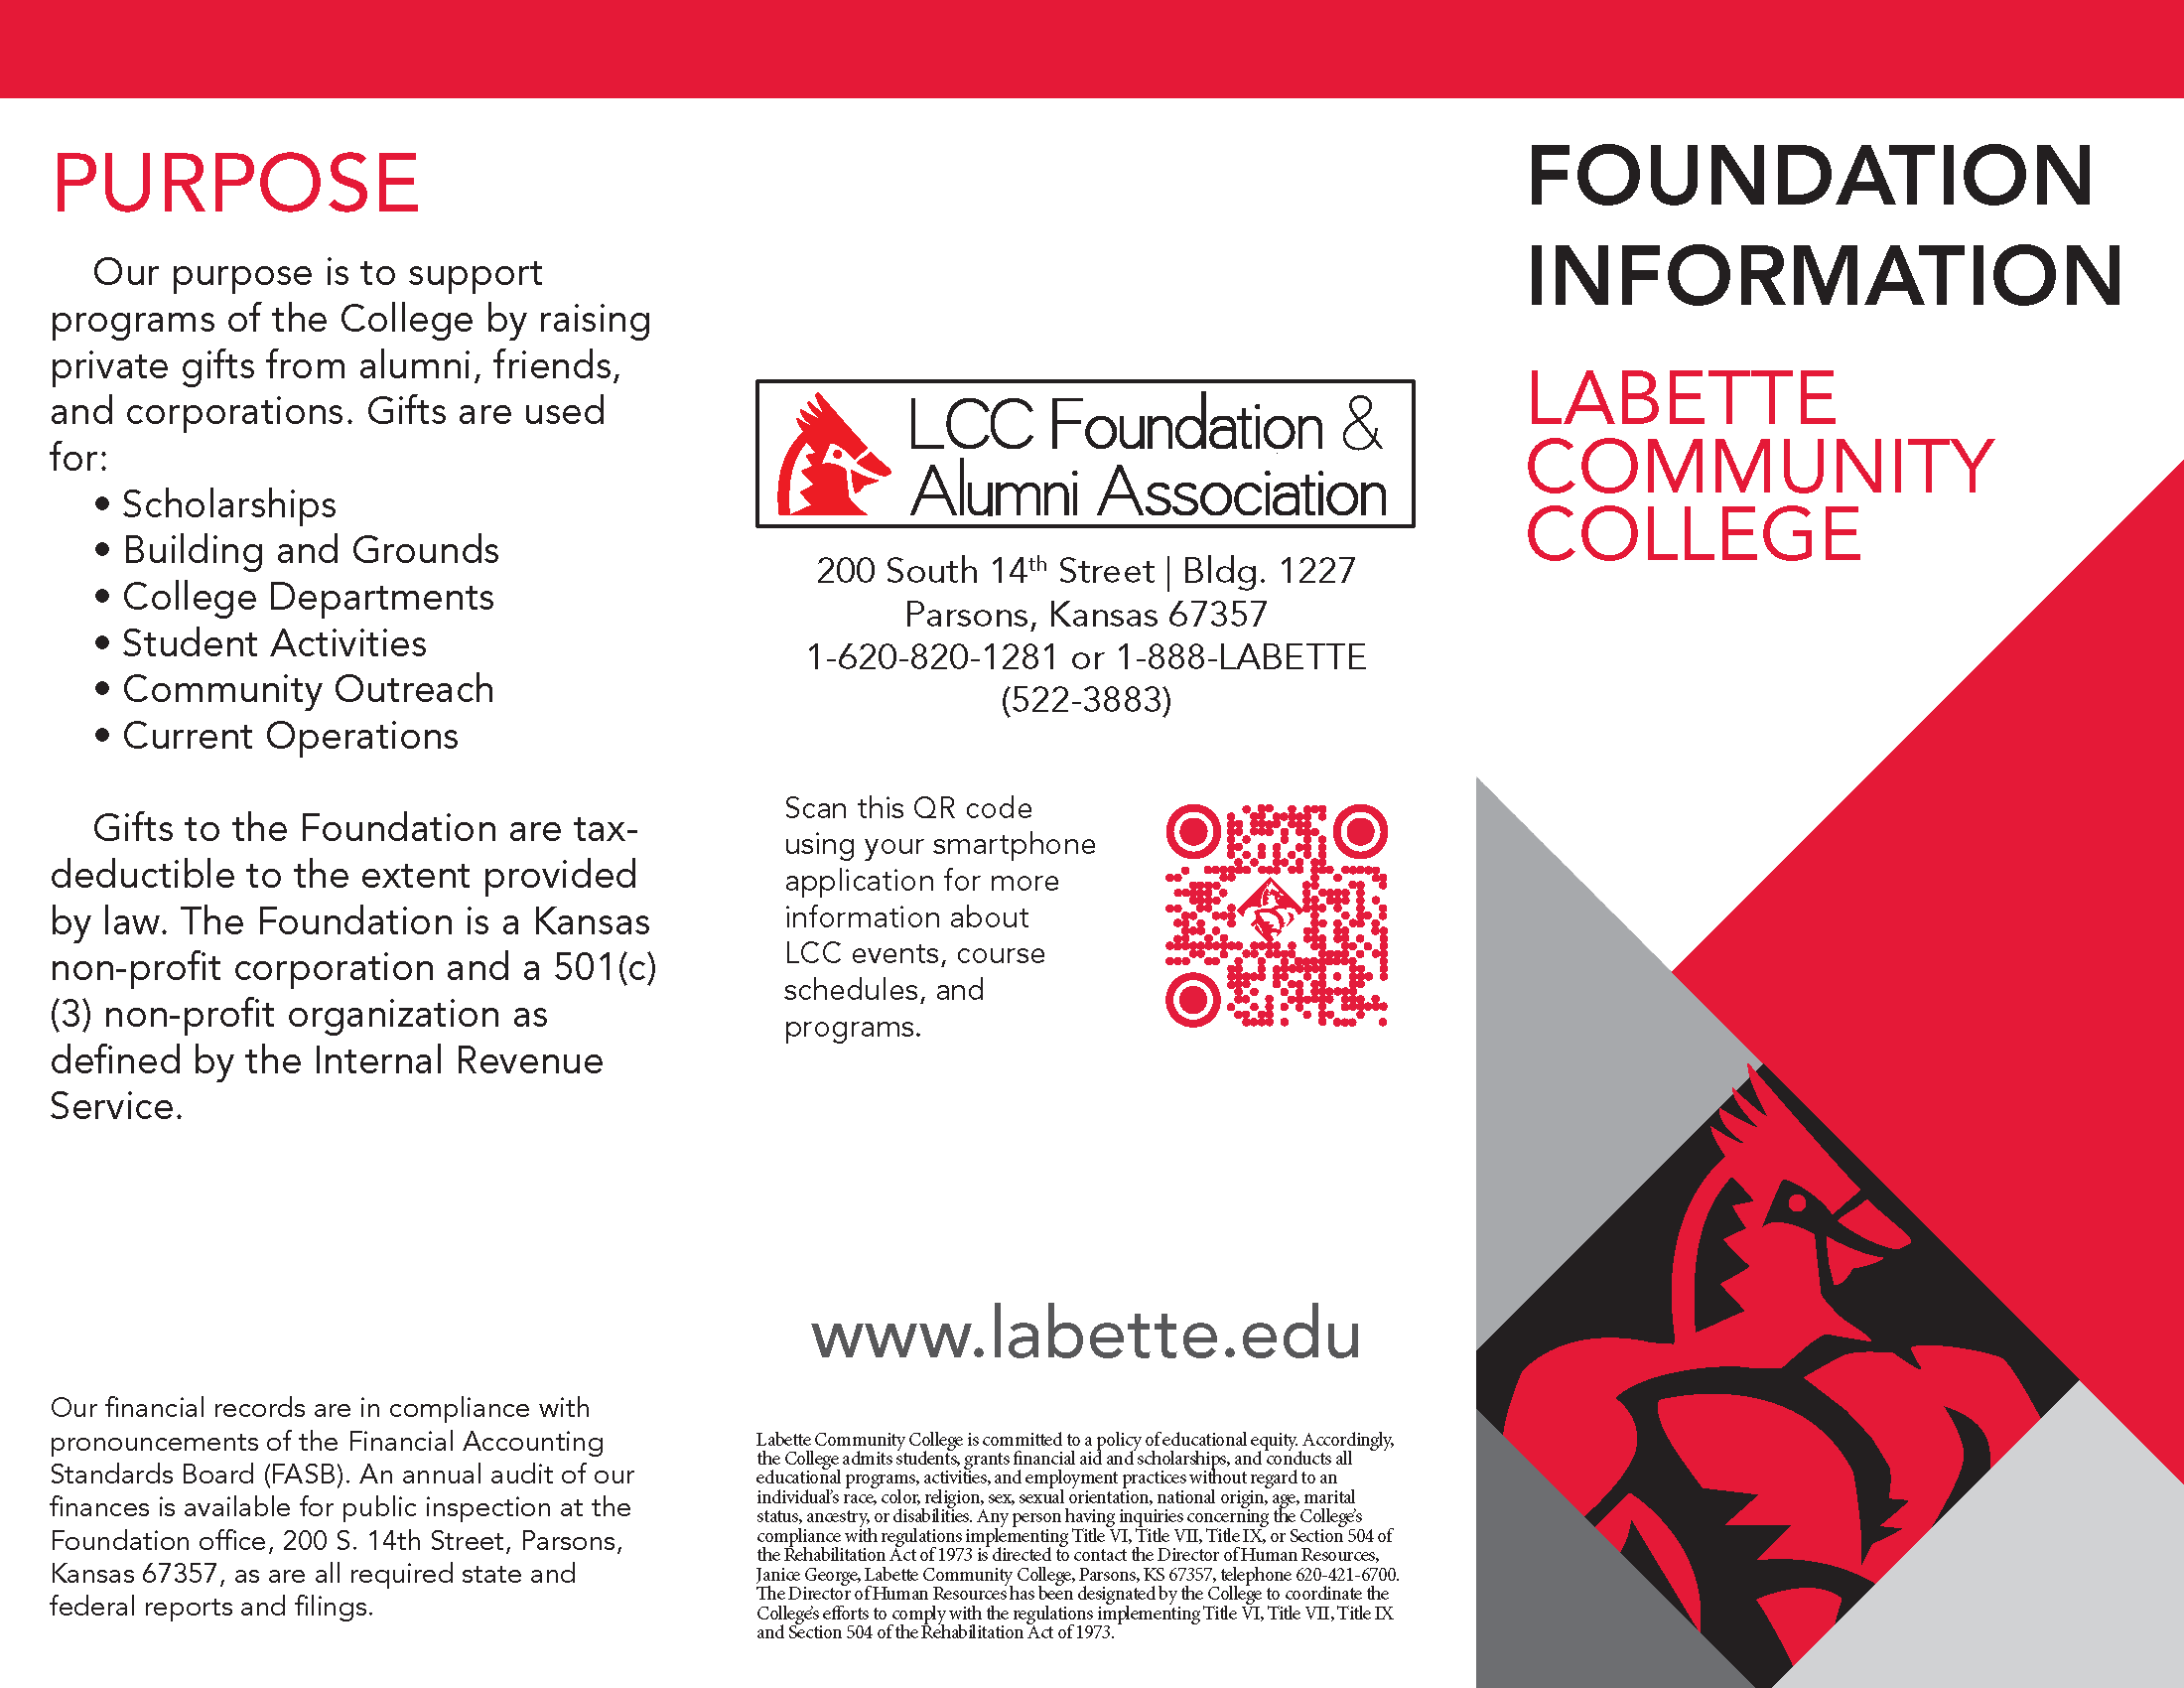 Foundation & Alumni ociation | Labette Community College on scholarship essay on leadership, financial aid form, scholarship banner, scholarship app, scholarship notification, scholarship requirements, scholarship essay examples, scholarship quotes, scholarship opportunities, scholarship checklist, scholarship statement of purpose, scholarship information, scholarship money, scholarship deadlines, scholarship logo, scholarship icon, transcript request form, scholarship program flyer, scholarship clip art, eligibility form,